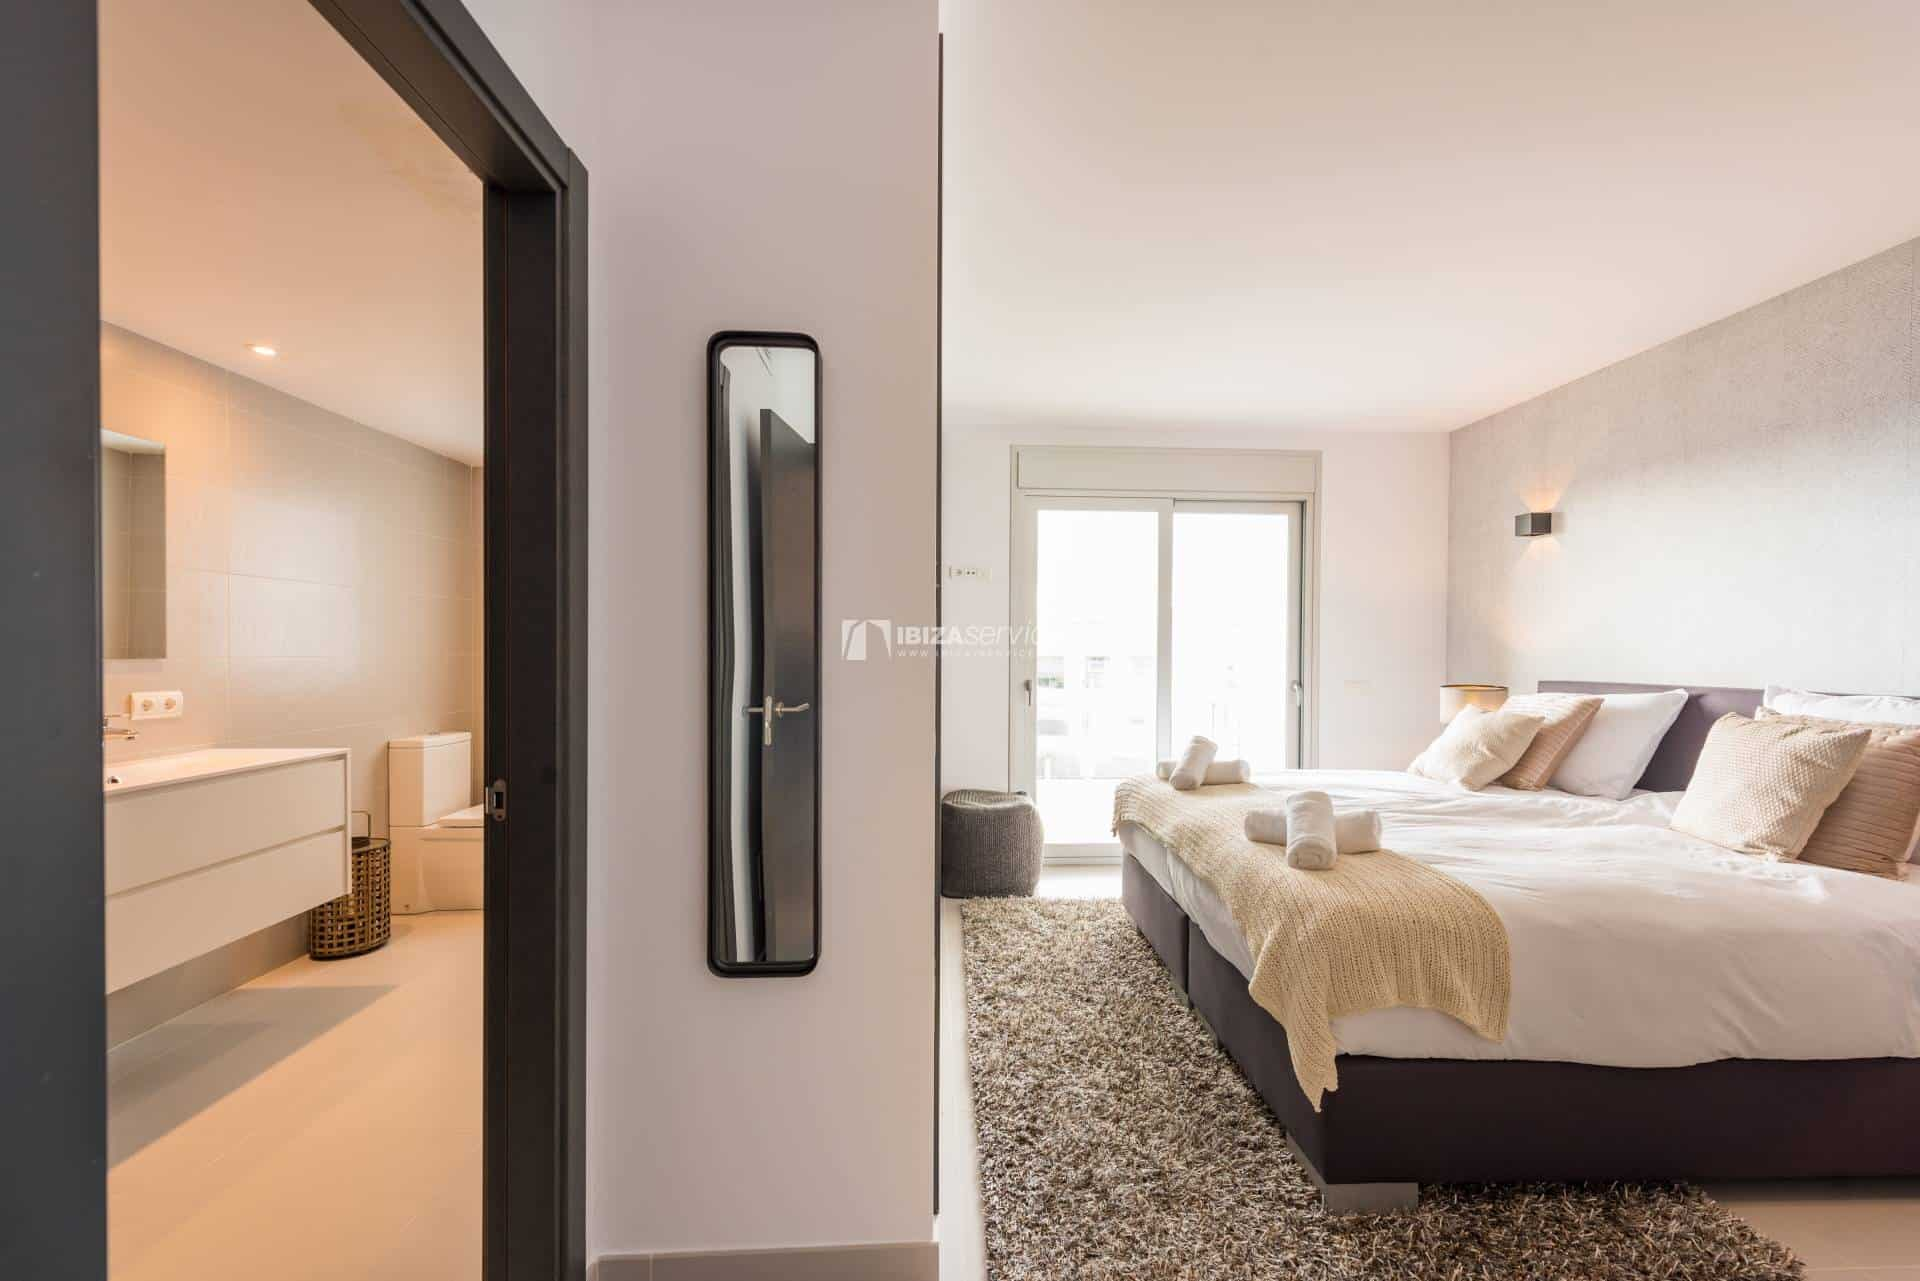 Modern penthouse 4 bedrooms for sale Jesus perspectiva 15